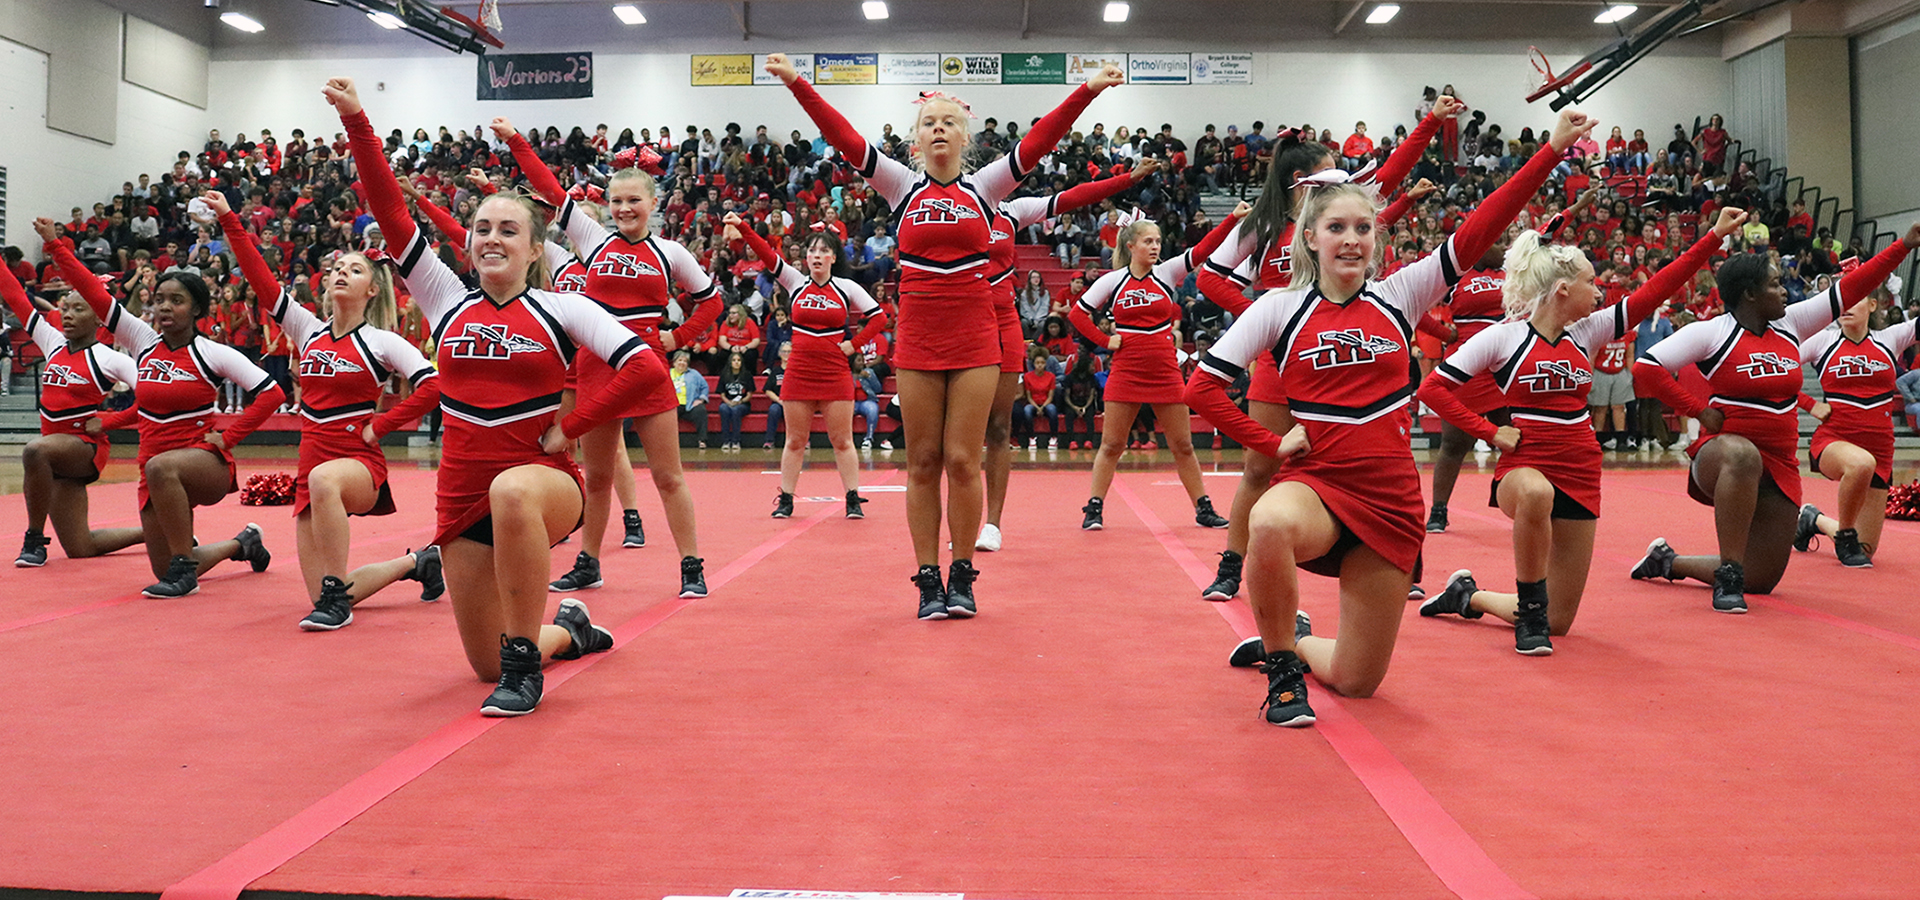 Cheerleaders all in red performing in gym with crowd in background.